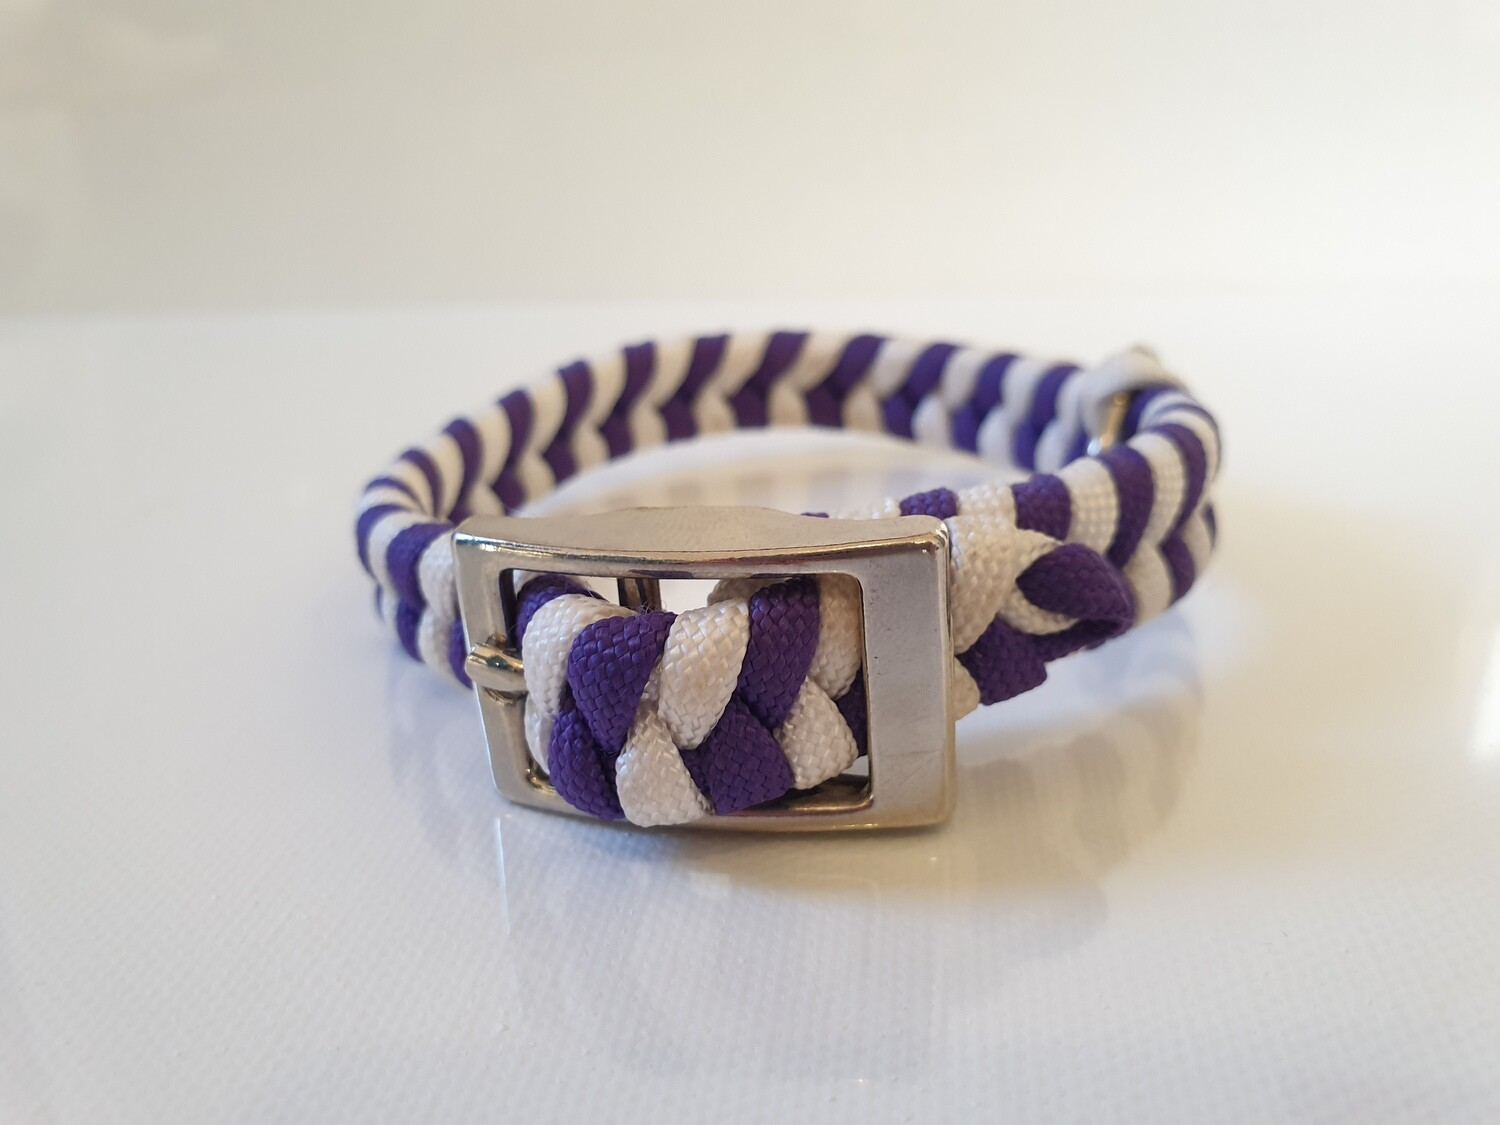 Flat Braid Extra Small Purple/White Dog Collar